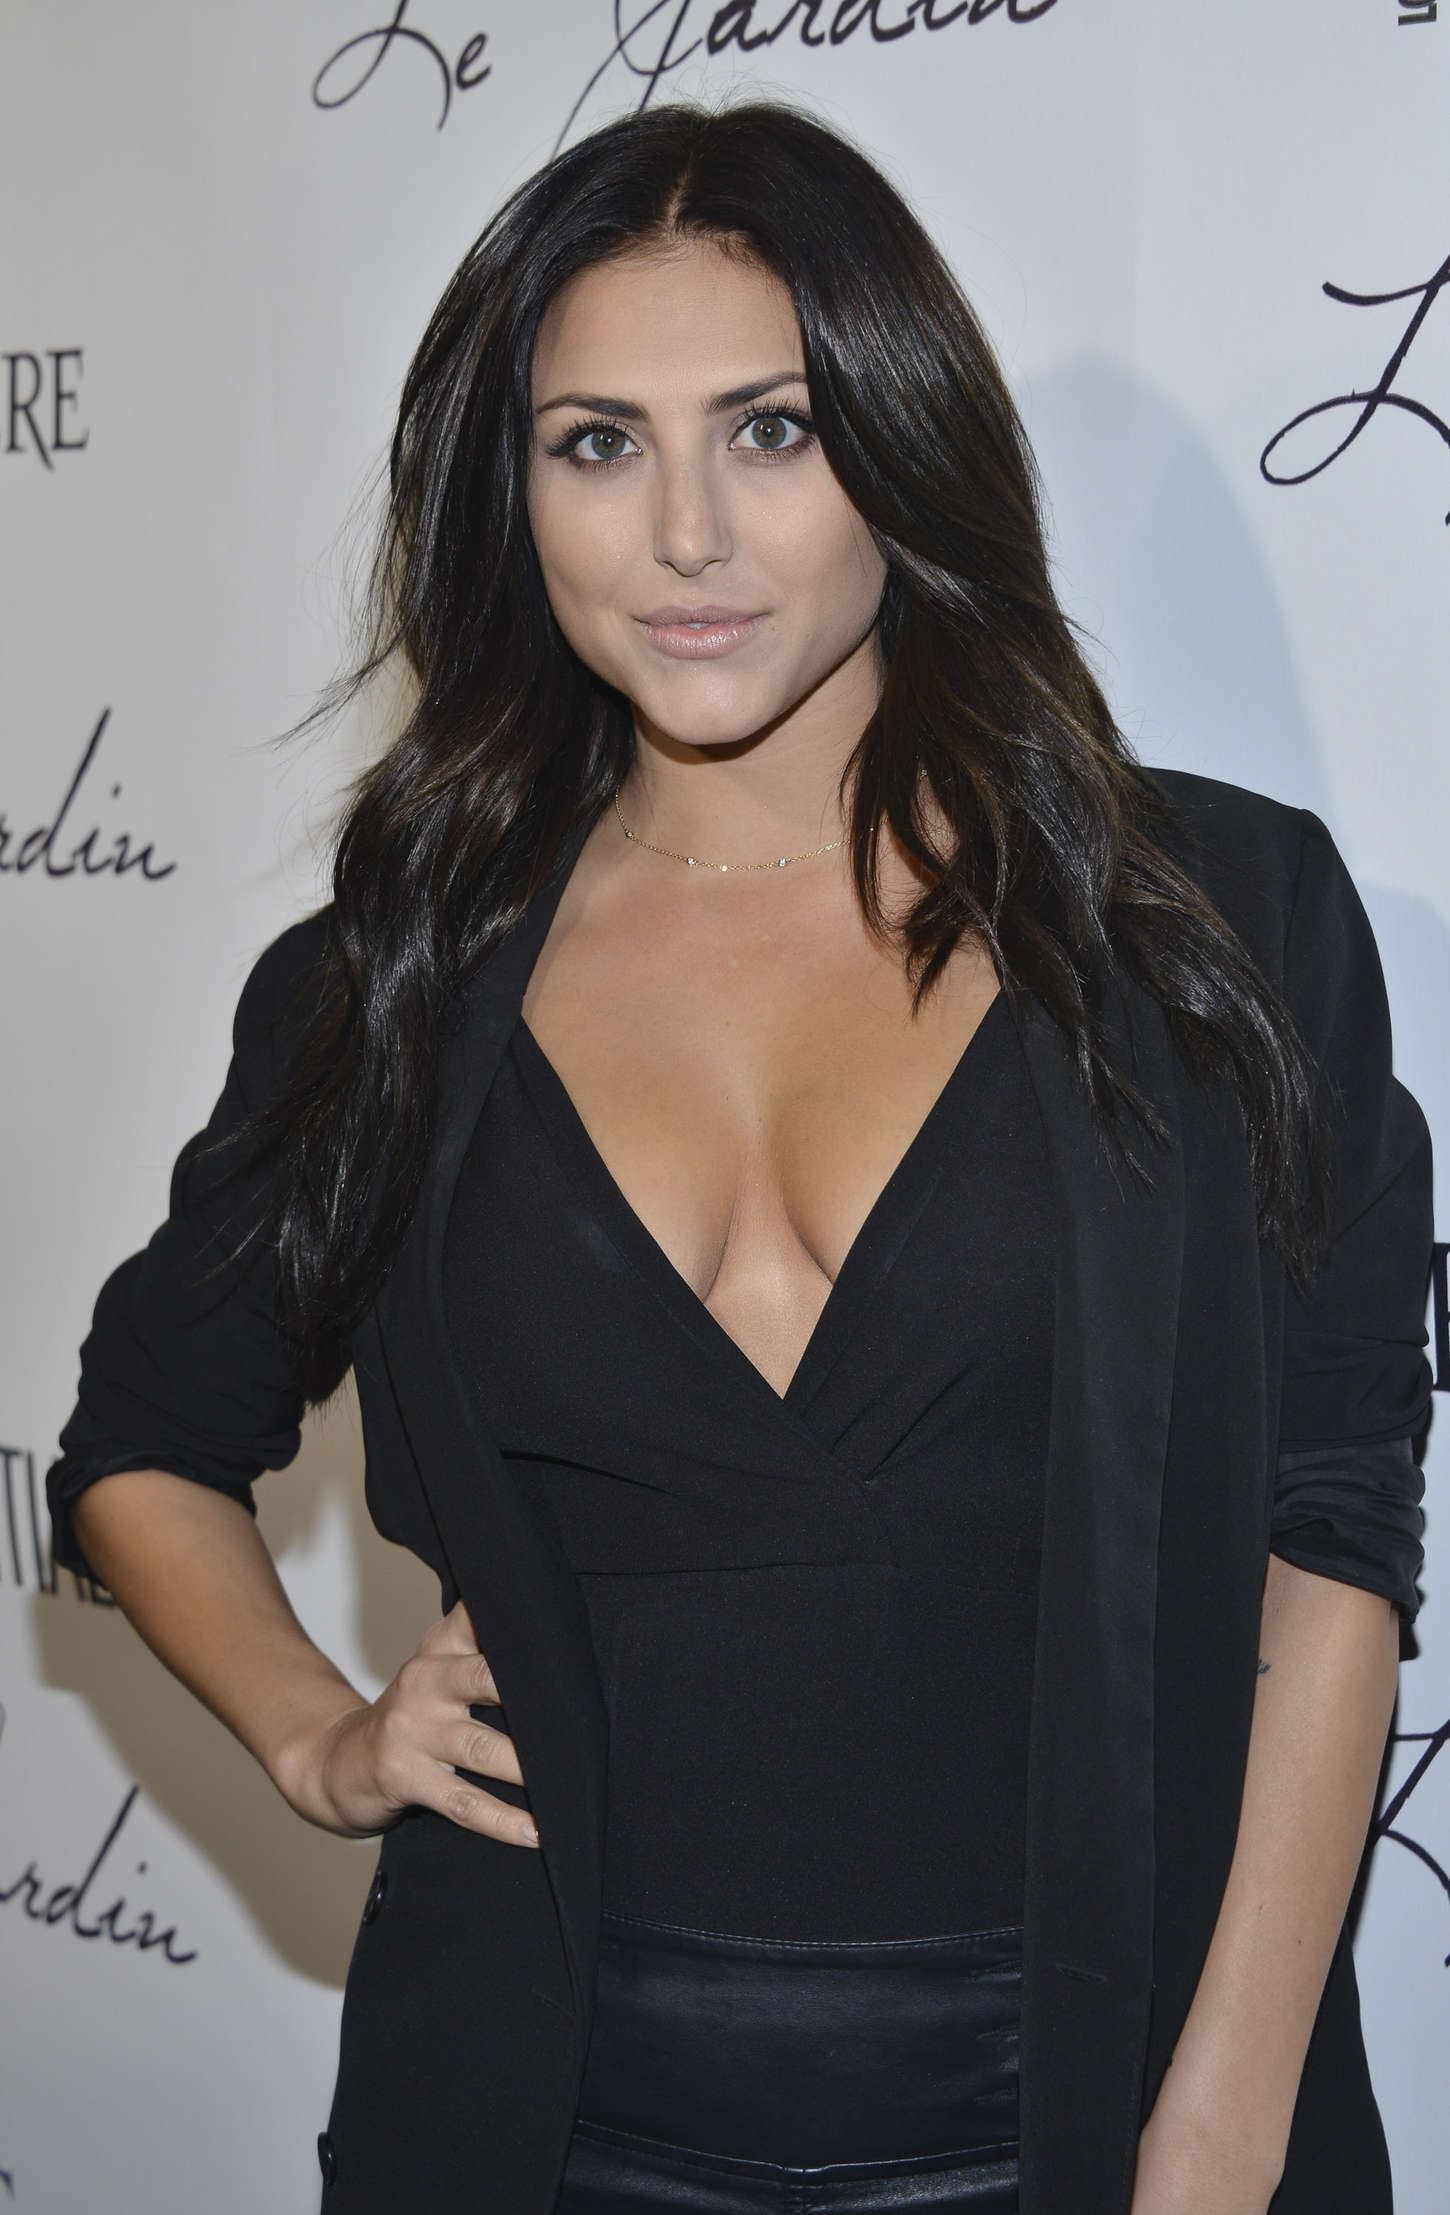 Cassie Scerbo - Grand Opening Of Le Jardin in Hollywood